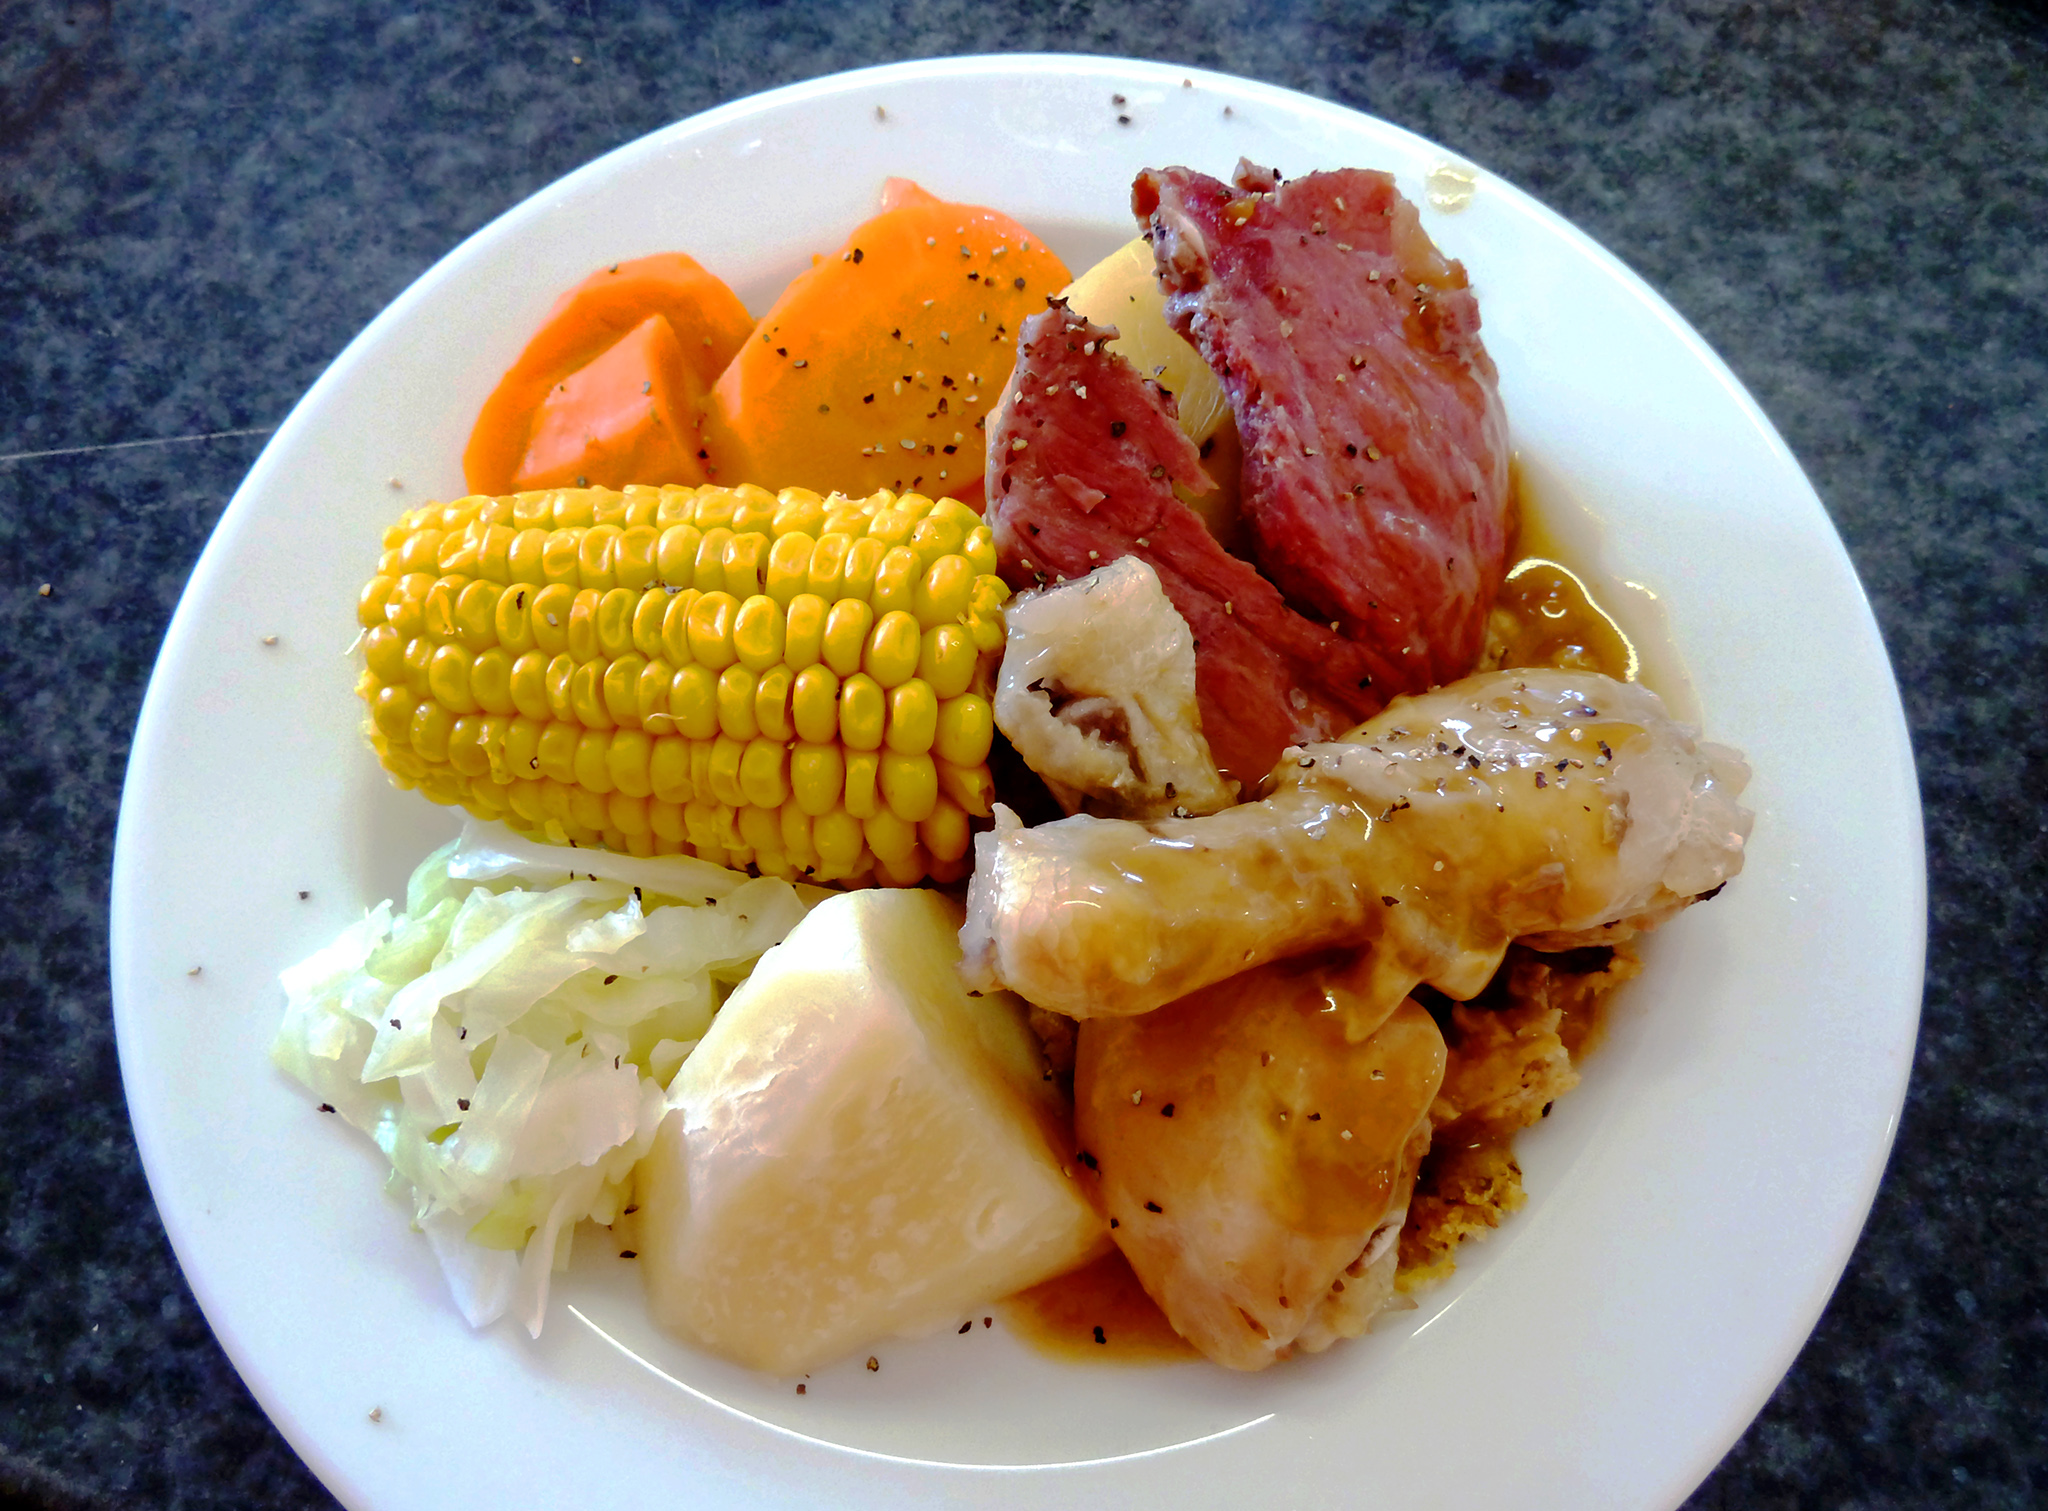 Plat de cuisson traditionnelle maorie